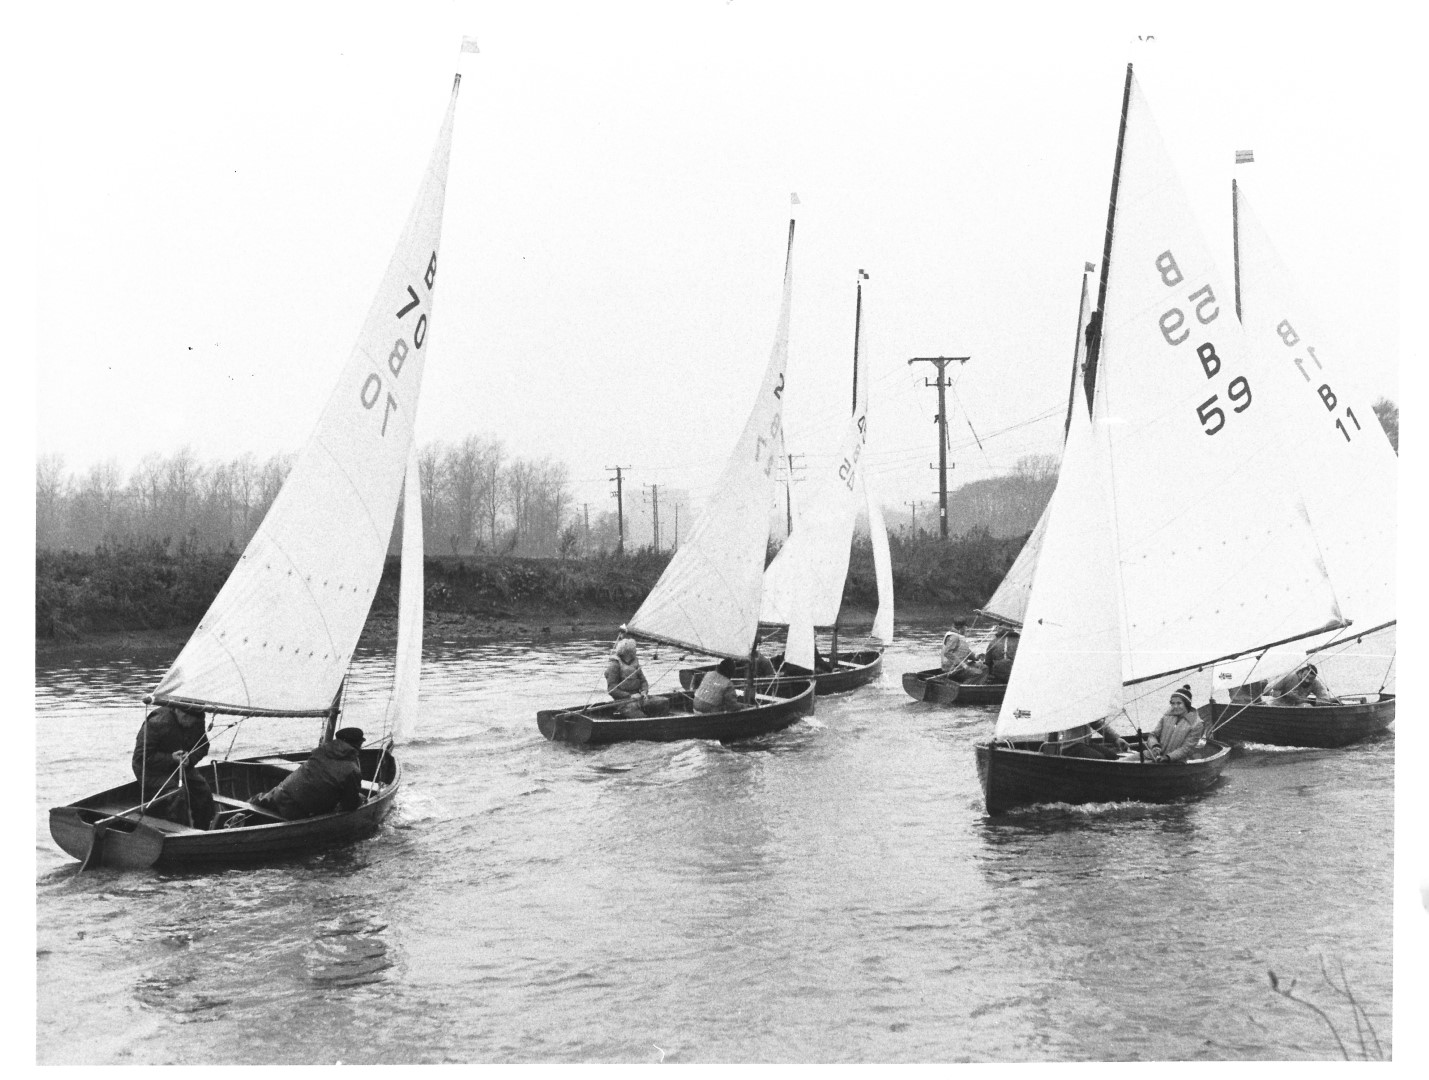 Norfolk Dinghies racing on the Yare at Whittlingham - NFSC Dec 1982